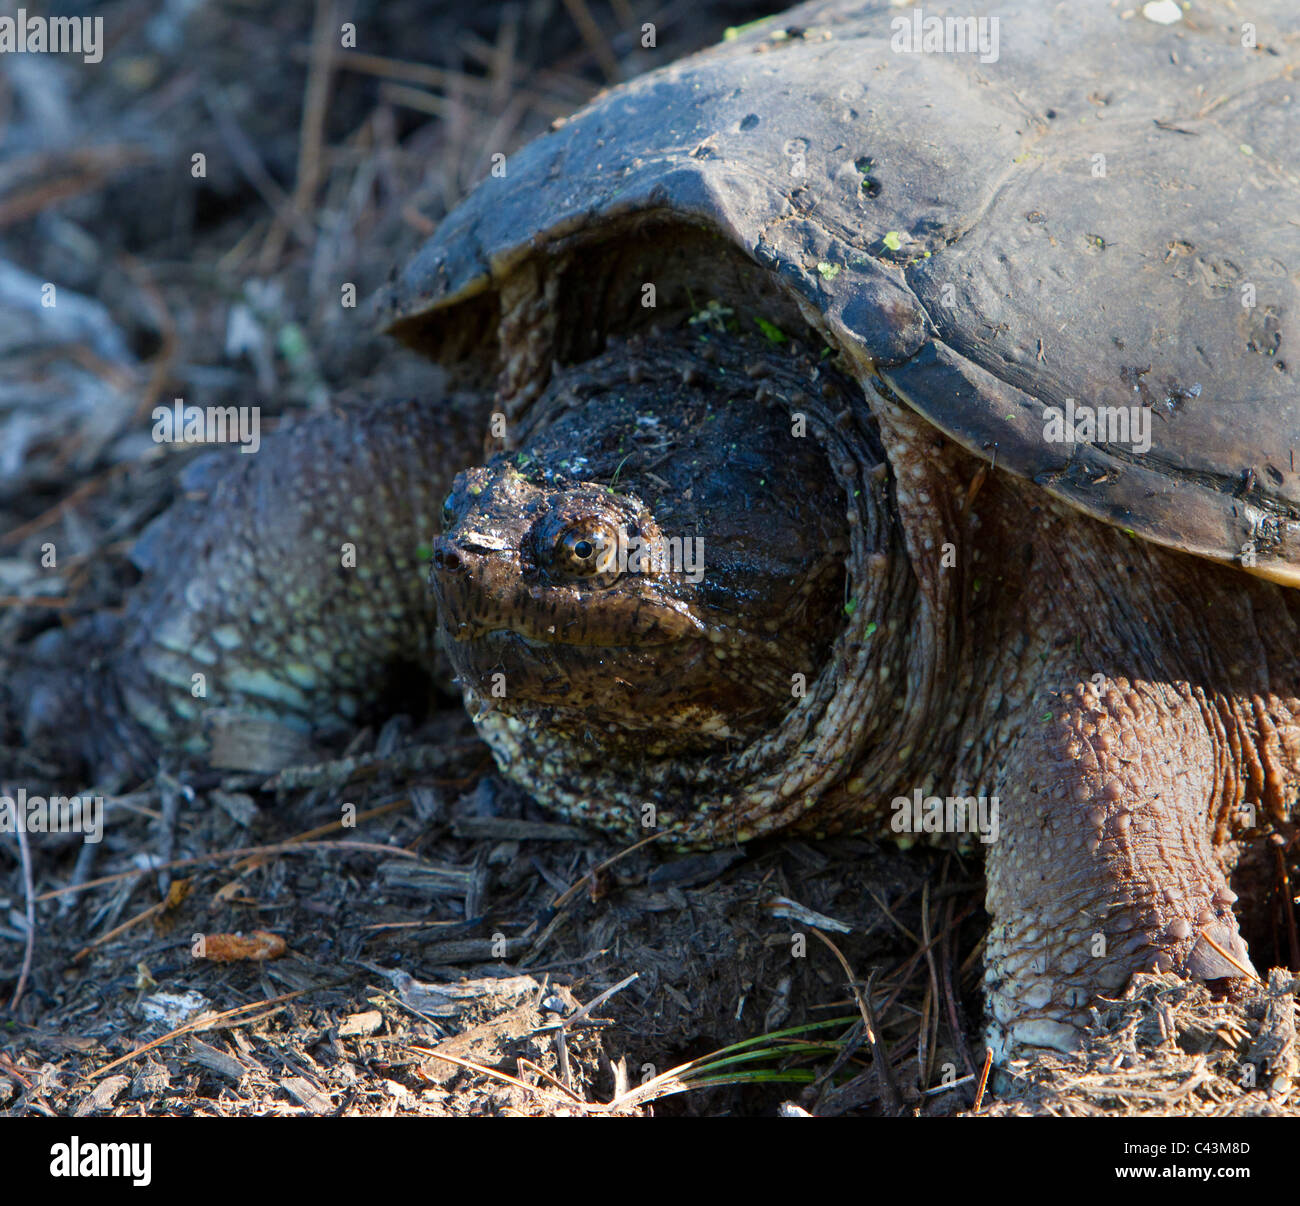 common snapping turtle, Chelydra serpentina Stock Photo